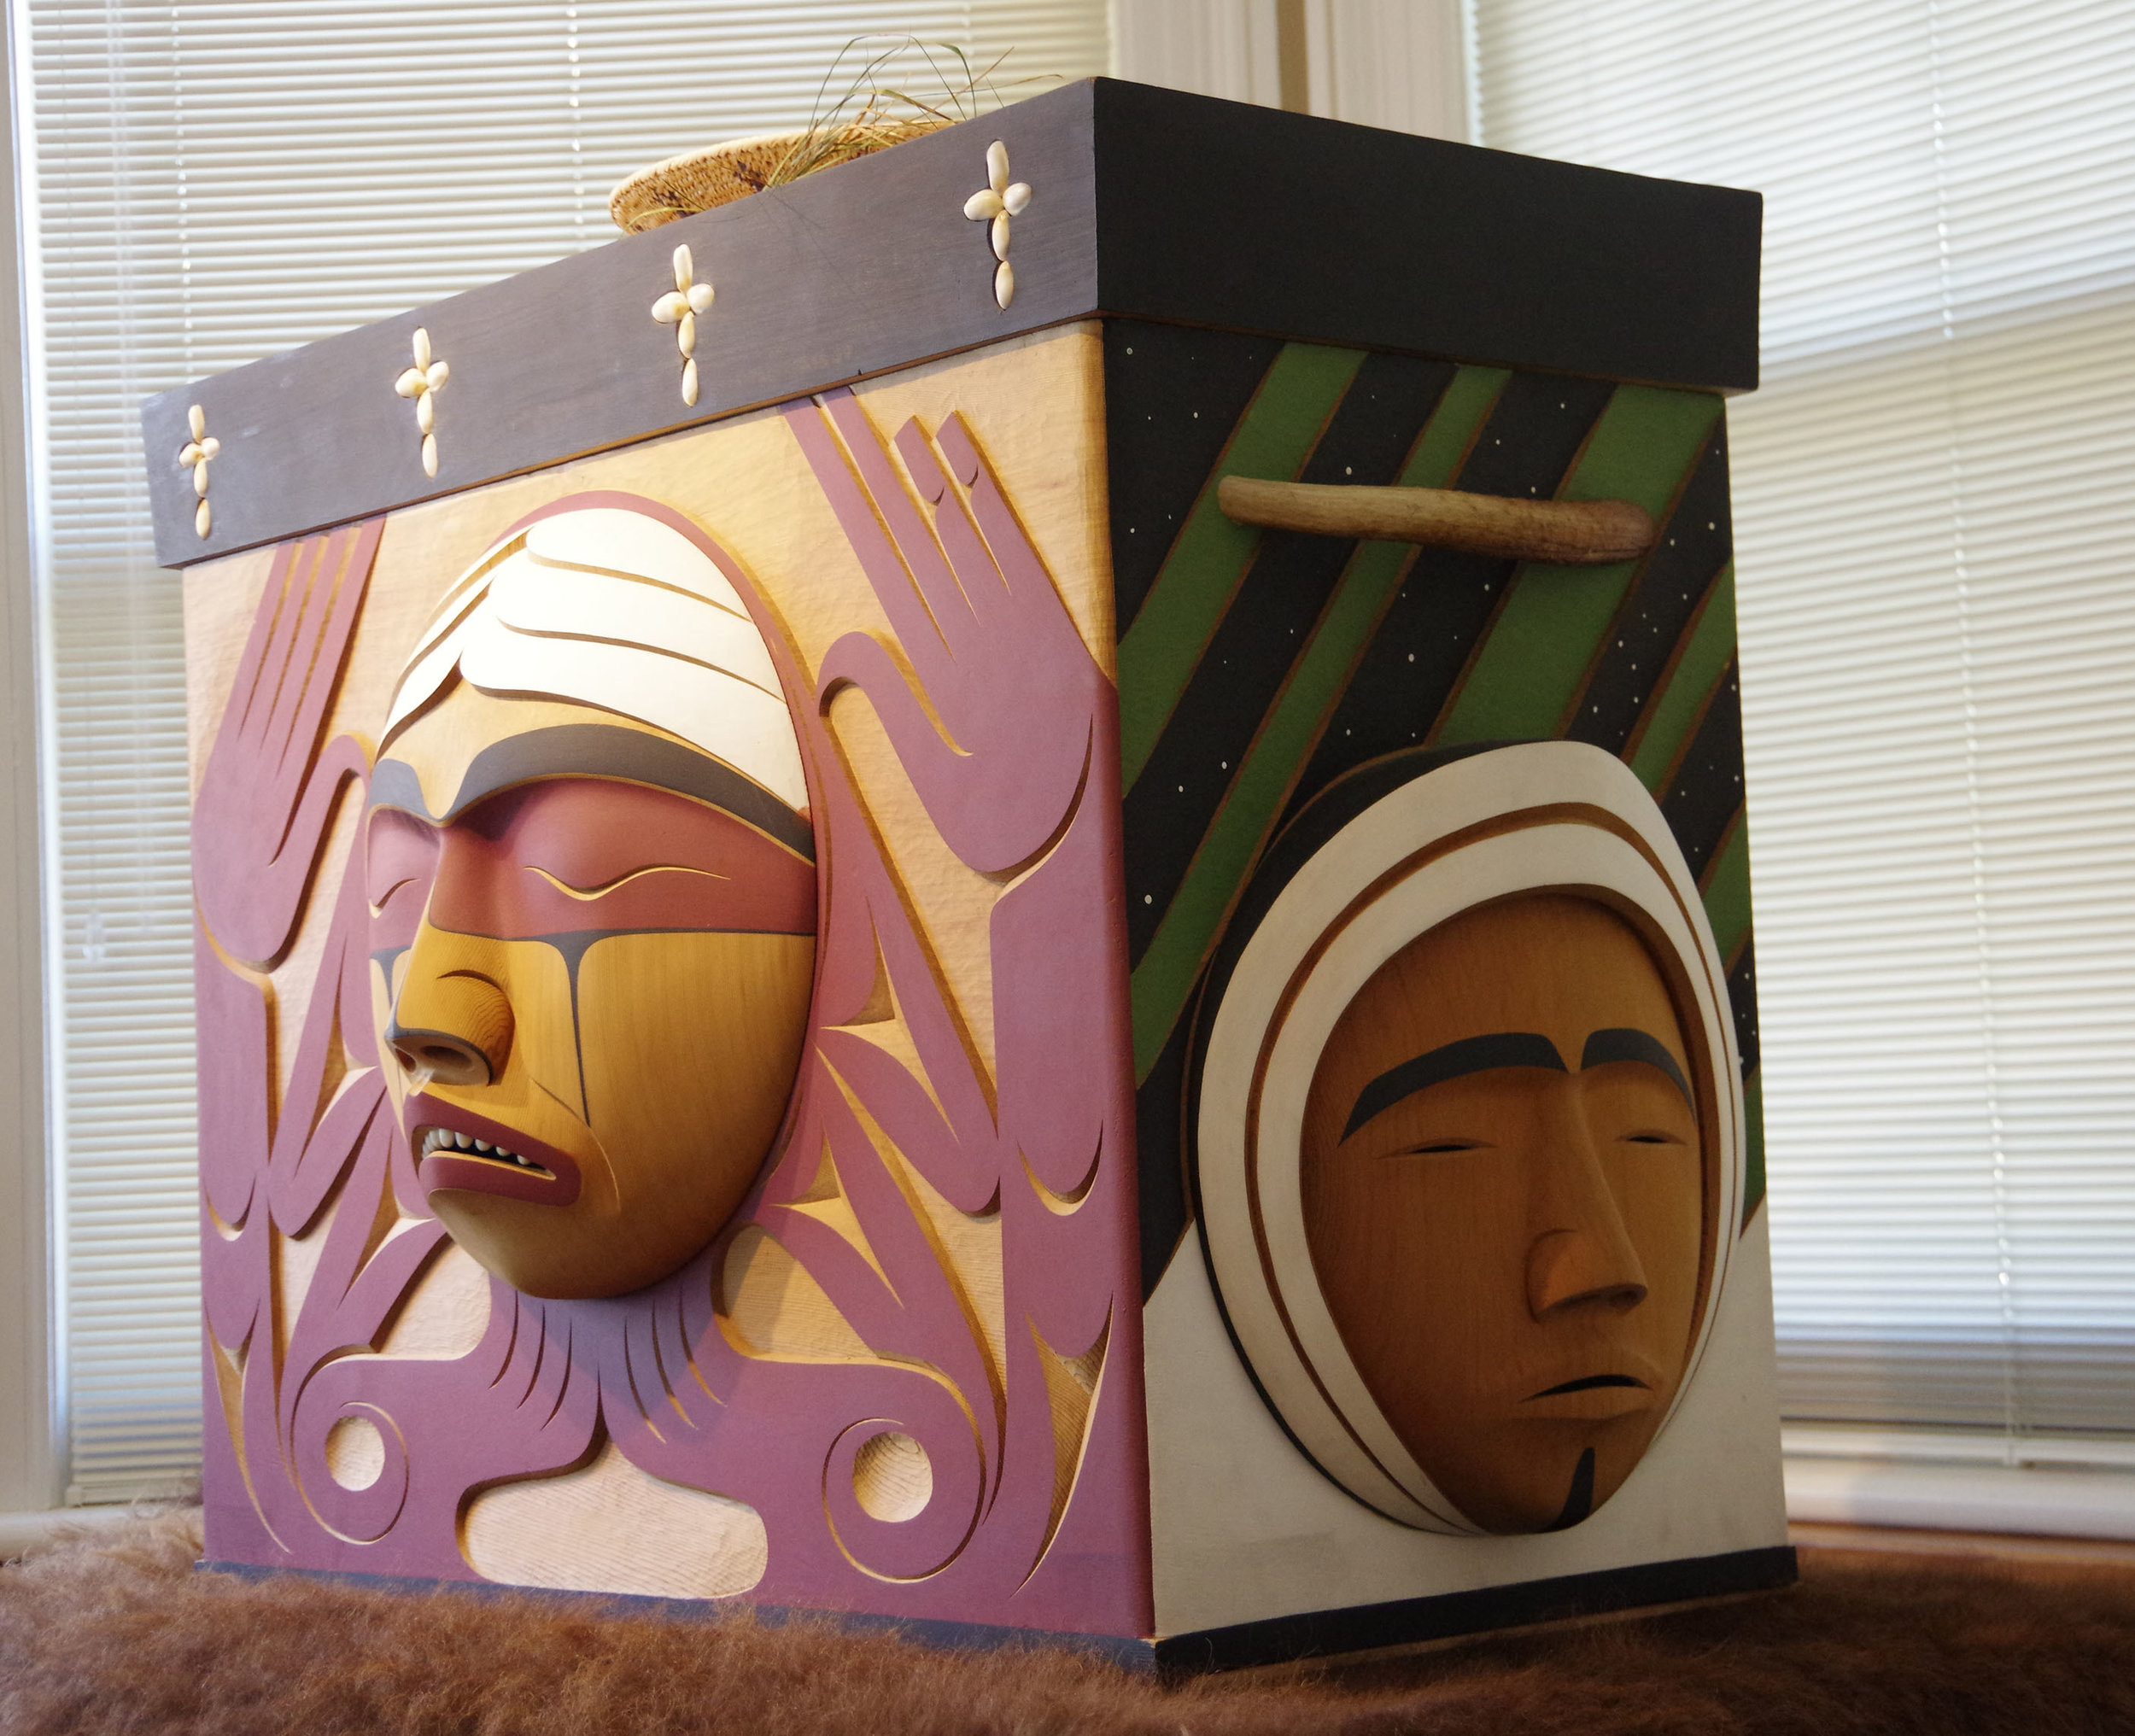 Bentwood box at NCTR. The box was used to hold testimony, gifts and medicines offered as the TRC toured Canada.